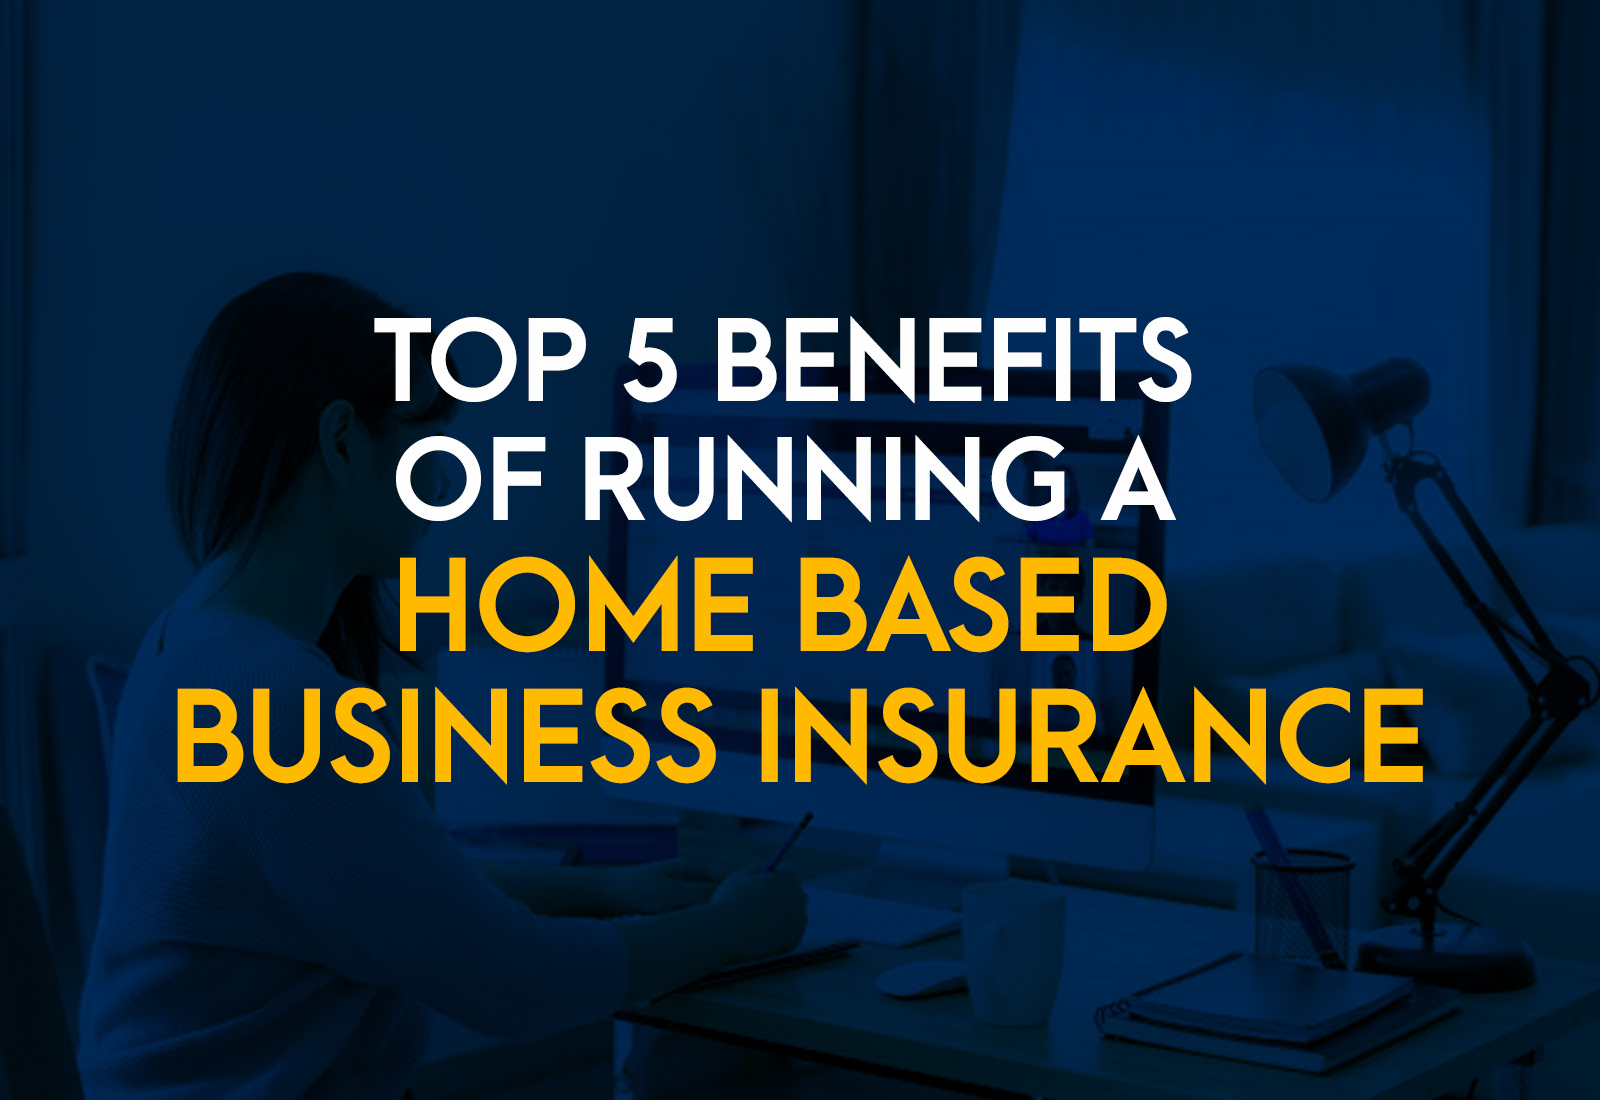 Top 5 Benefits of Running a Home-Based Business Insurance